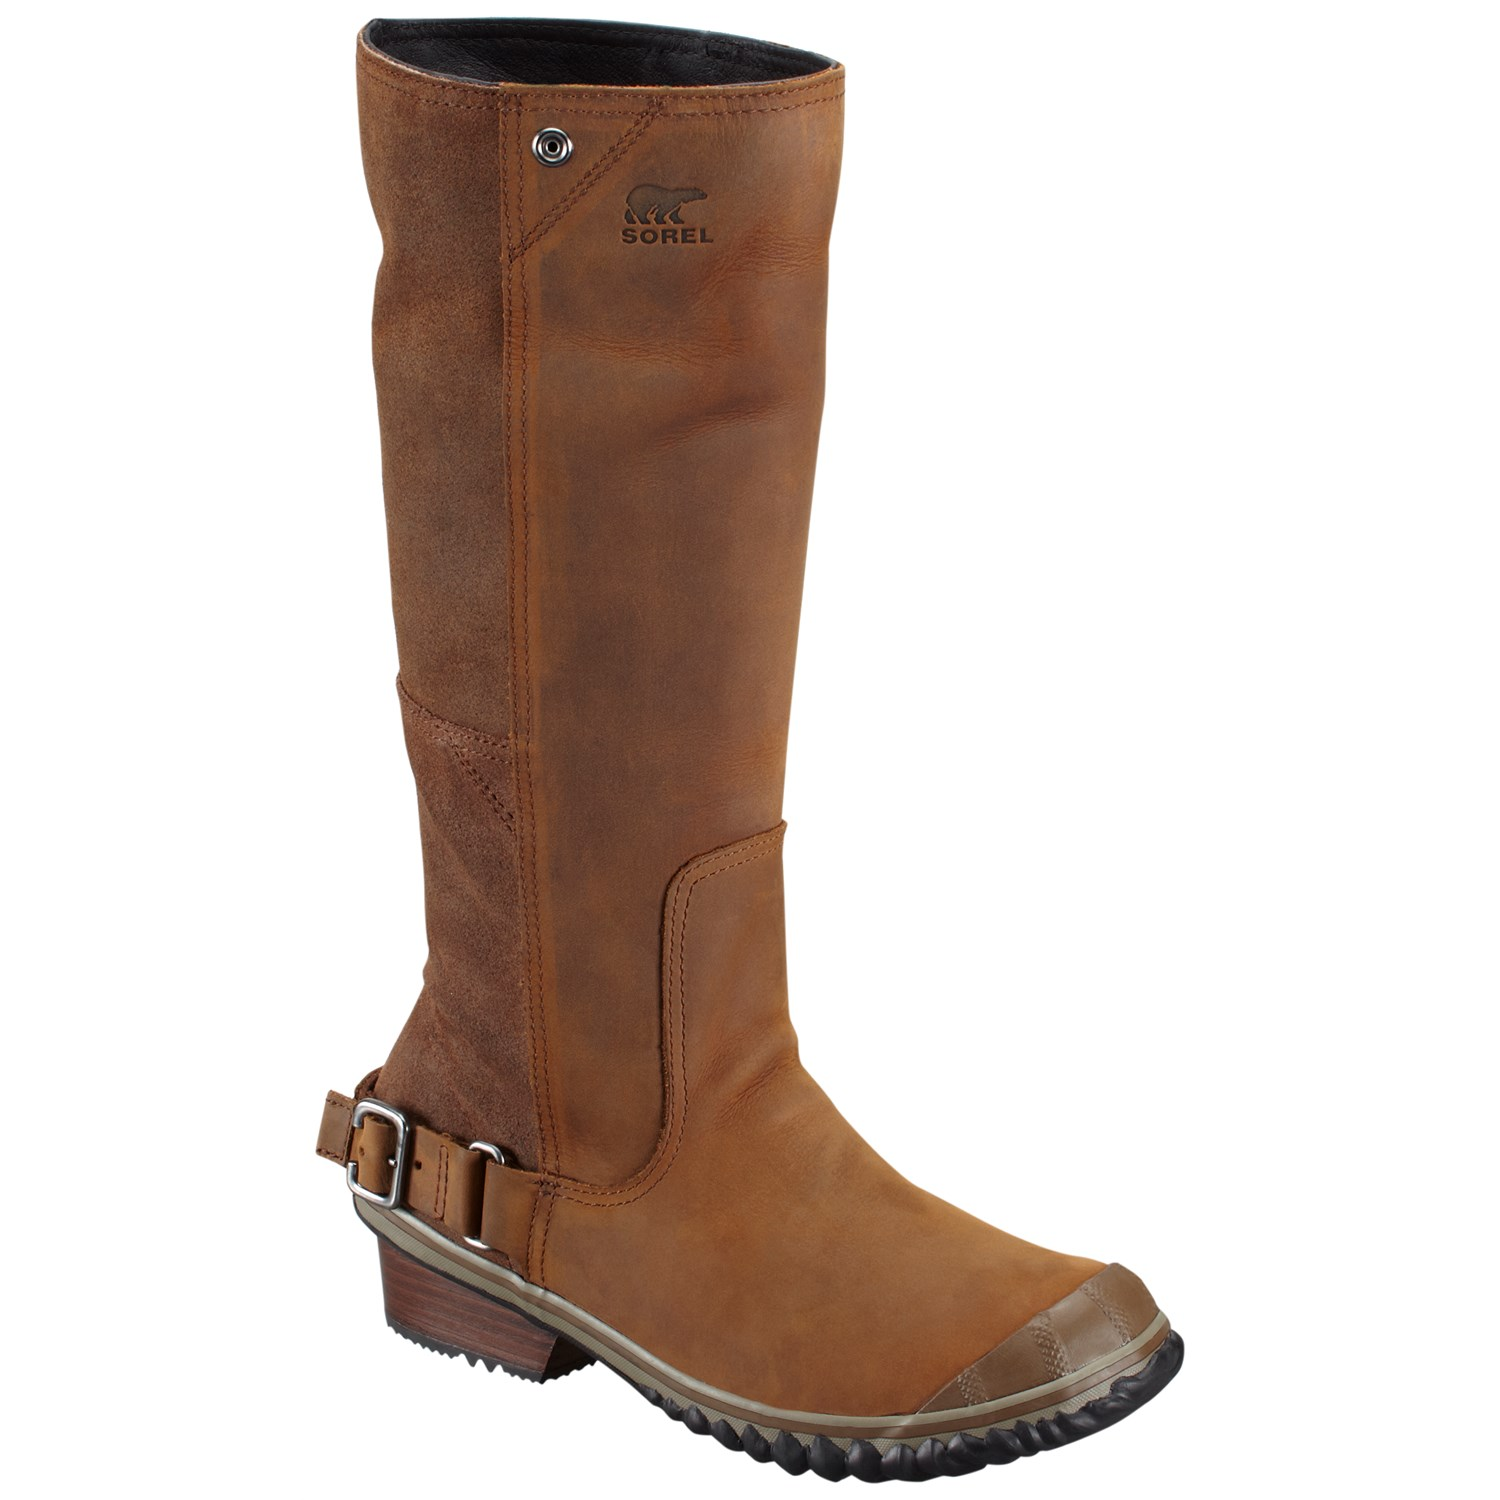 sorel slimboot boots s evo outlet